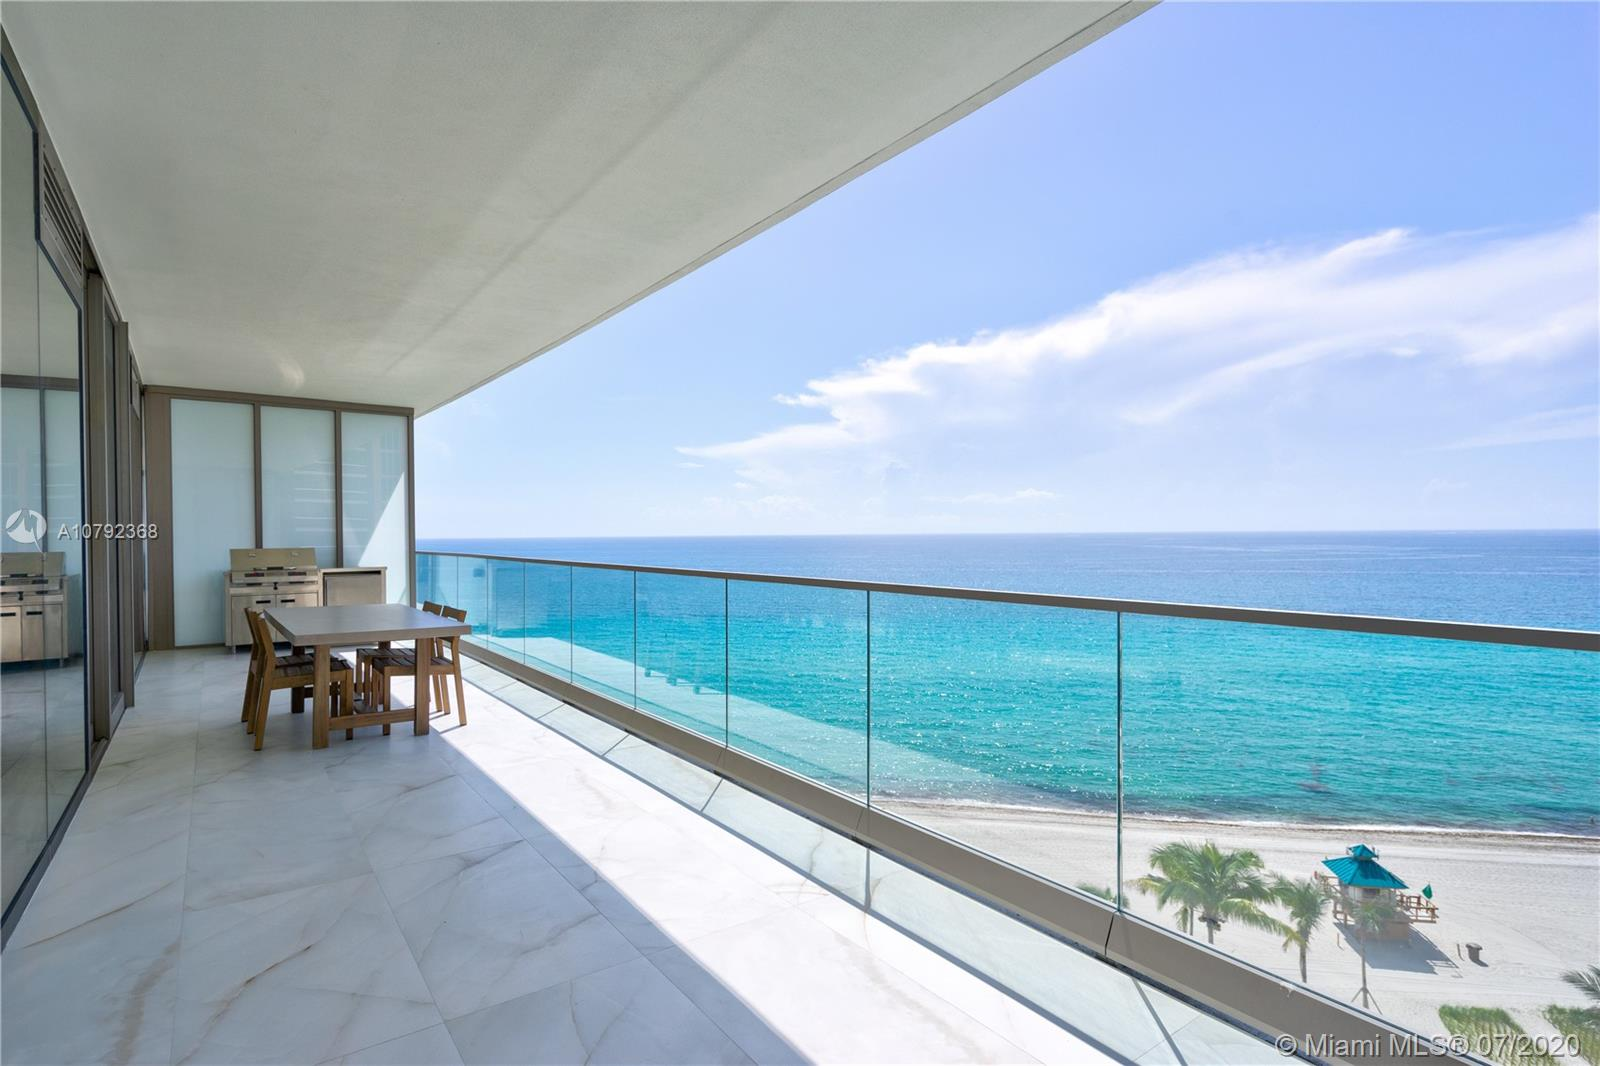 Newly completed exclusive & luxurious oceanfront residences by Armani Casa. Unit will be delivered with unique Onyx porcelain flooring throughout. Enjoy the stunning ocean and intracoastal views from this flow-thru residence. 4 bedrooms plus Den and 5 1/2 bathrooms, private high-speed elevator access to foyer, 10 ft ceilings, floor to ceiling windows, 2 expansive balconies overlooking the intracoastal and ocean views. It features Subzero fridge & Wolf appliances and stone counter-tops. Amenities include a private oceanfront restaurant & bar, Spa, private Movie Theater, heated pool, cigar room, children playground, fitness center, distinctive two-story revitalization spa with indoor & outdoor treatment rooms, direct beach access.